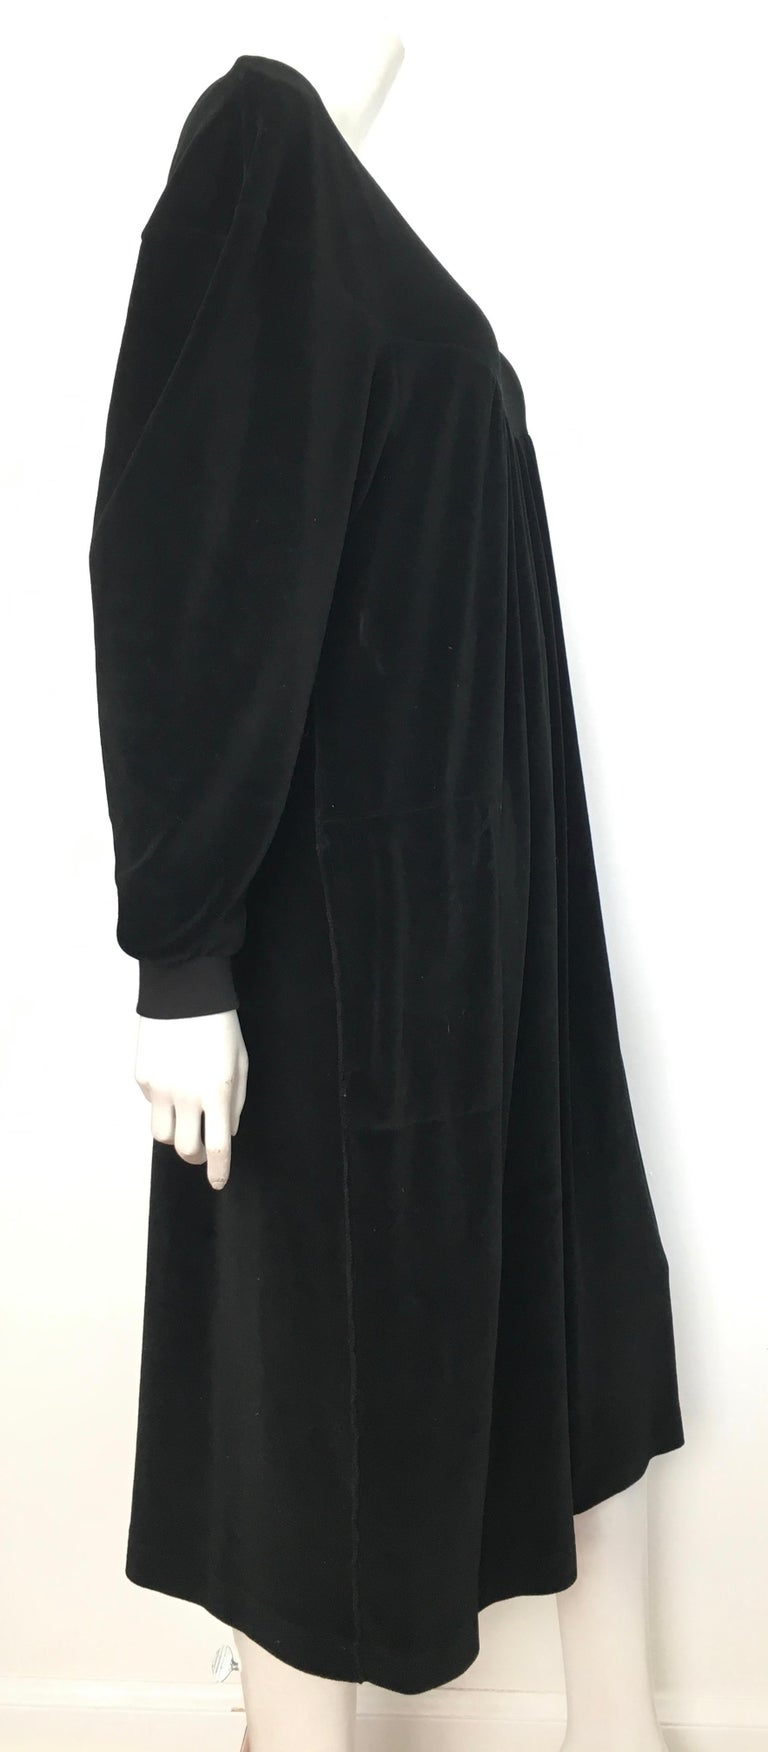 Sonia Rykiel 1980s Black Velour Dress with Pockets & Cardigan Size Large. For Sale 3